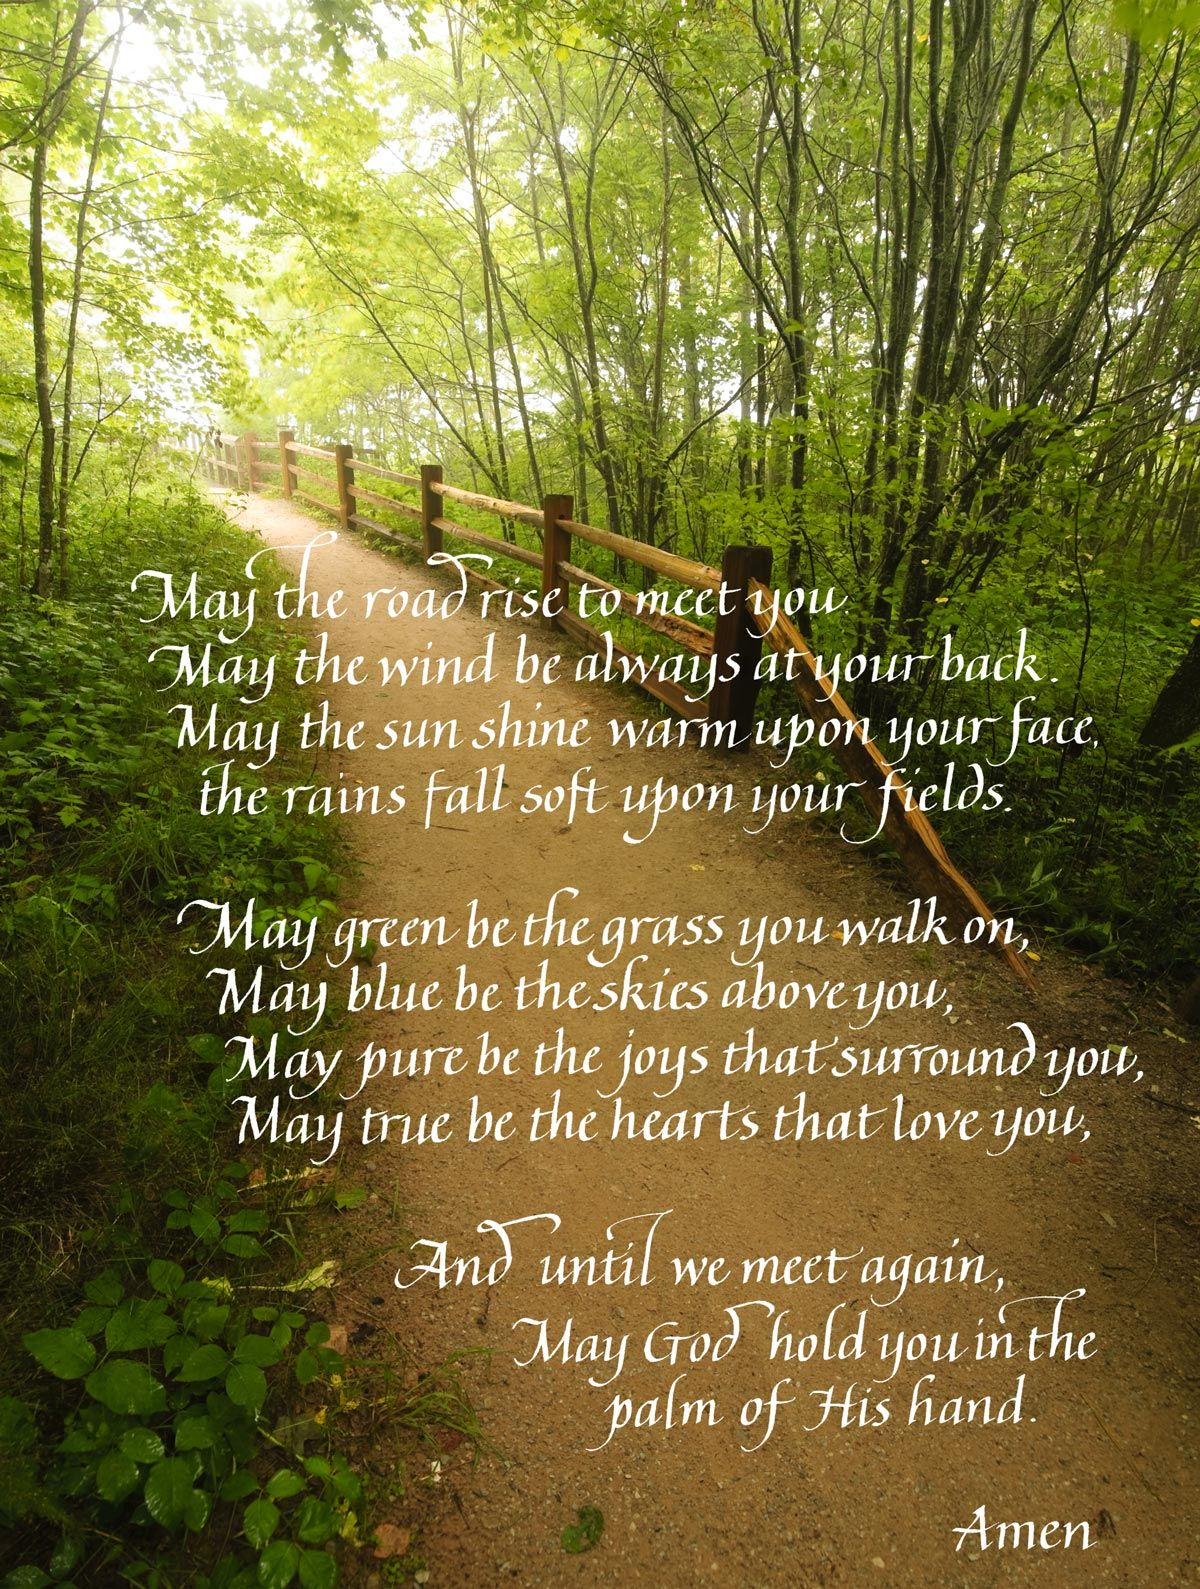 Famous Love Poems Quotes Pinsuzanne Ponder On Filled With Faith & Spirit  Pinterest